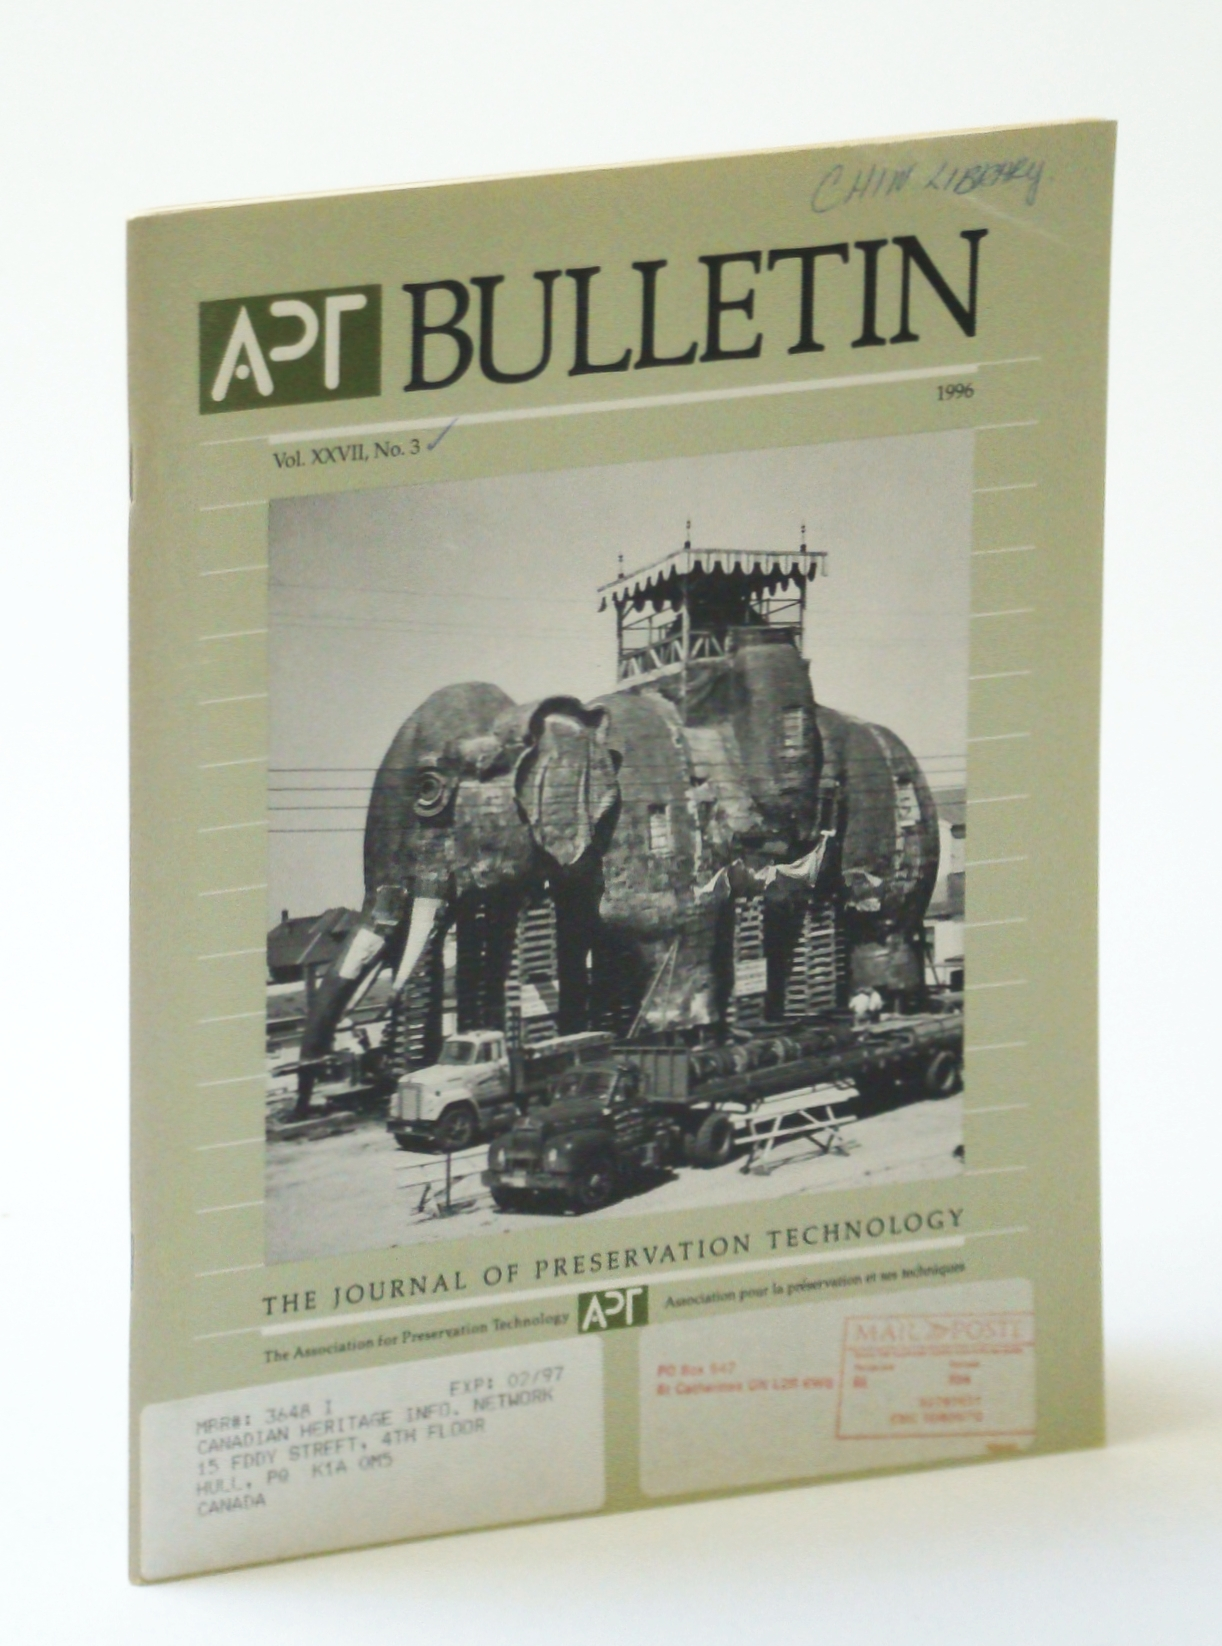 Image for APT Bulletin - The Journal of Preservation Technology, Vol. XXVII, No. 3, 1996 - Museums in Historic Buildings